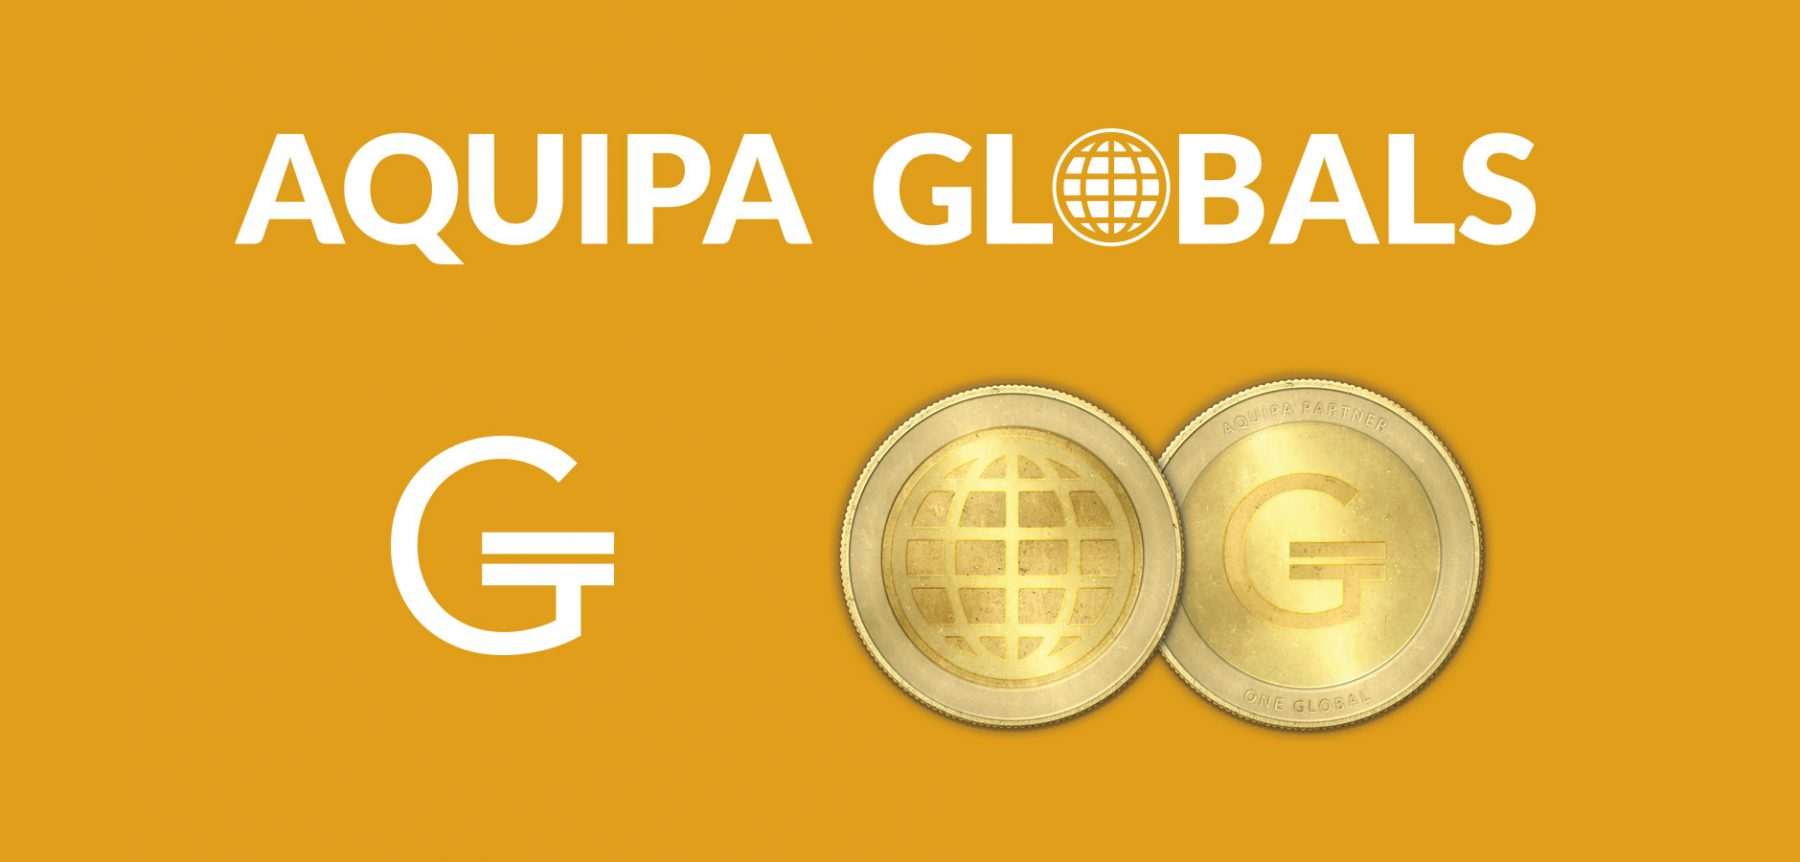 Branding for Aquipa Globals, including a currency inspired symbol.